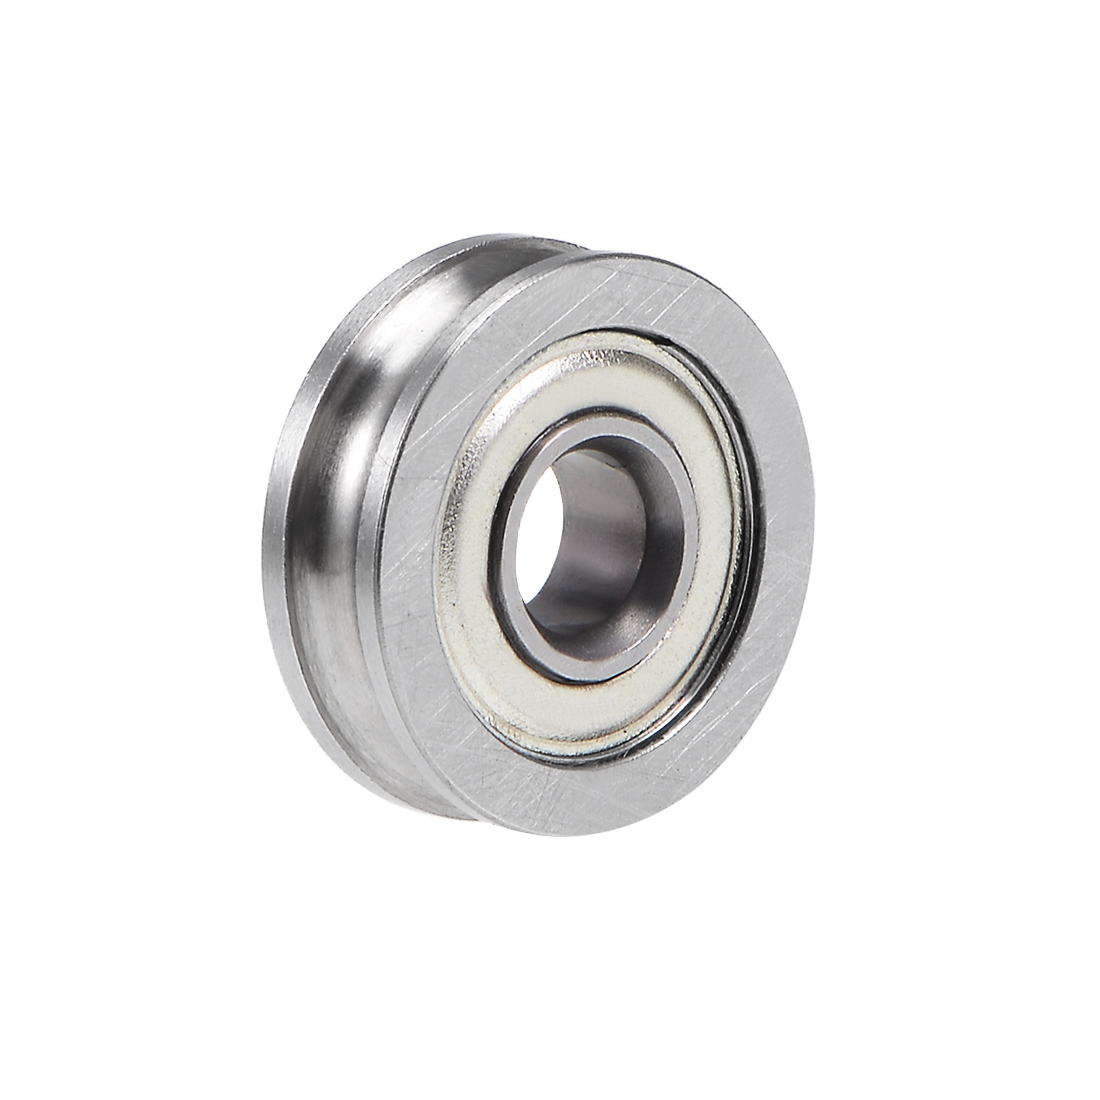 604UU U-Groove Bearing 4x13x4mm U604ZZ Bearings Guide Pulley